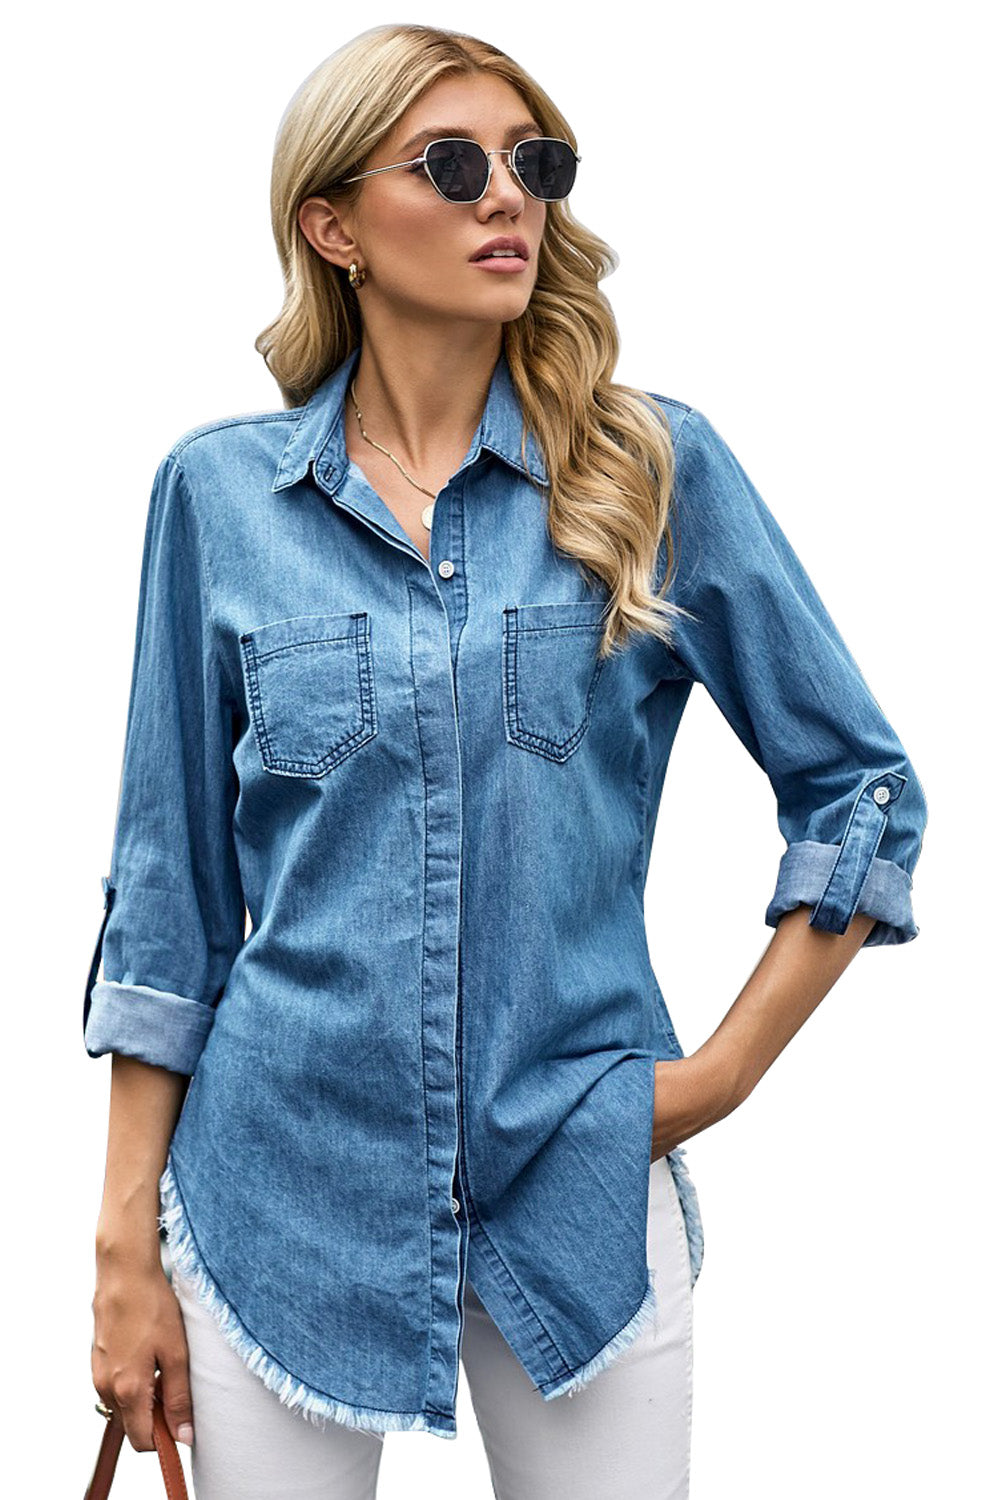 Roll up Long Sleeves Frayed Hem Denim Shirt Blouses & Shirts Discount Designer Fashion Clothes Shoes Bags Women Men Kids Children Black Owned Business